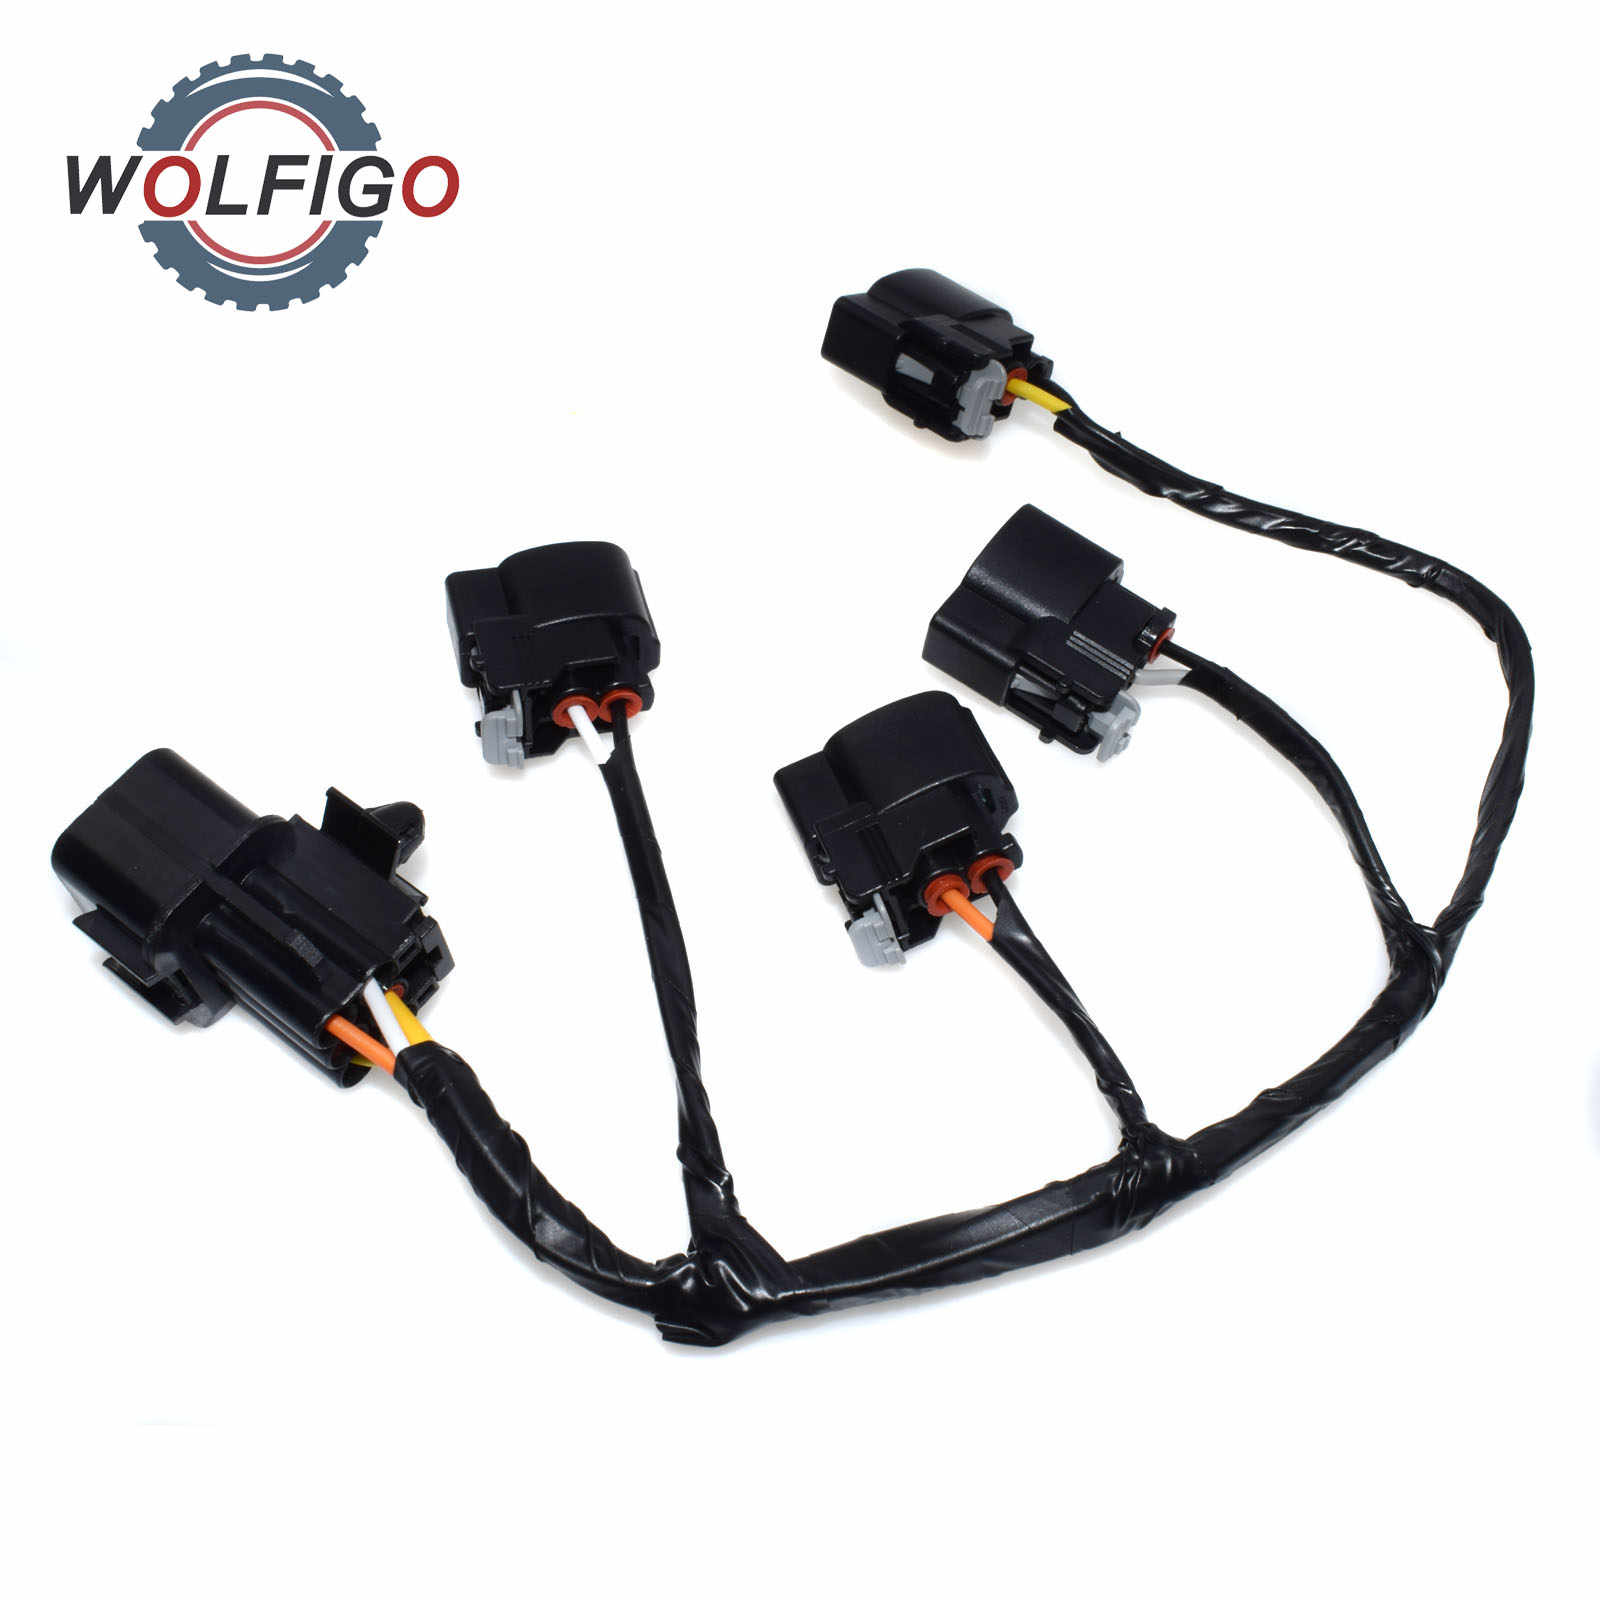 hight resolution of hyundai veloster wiring harness wiring diagram view hyundai veloster wiring diagram detail feedback questions about wolfigo